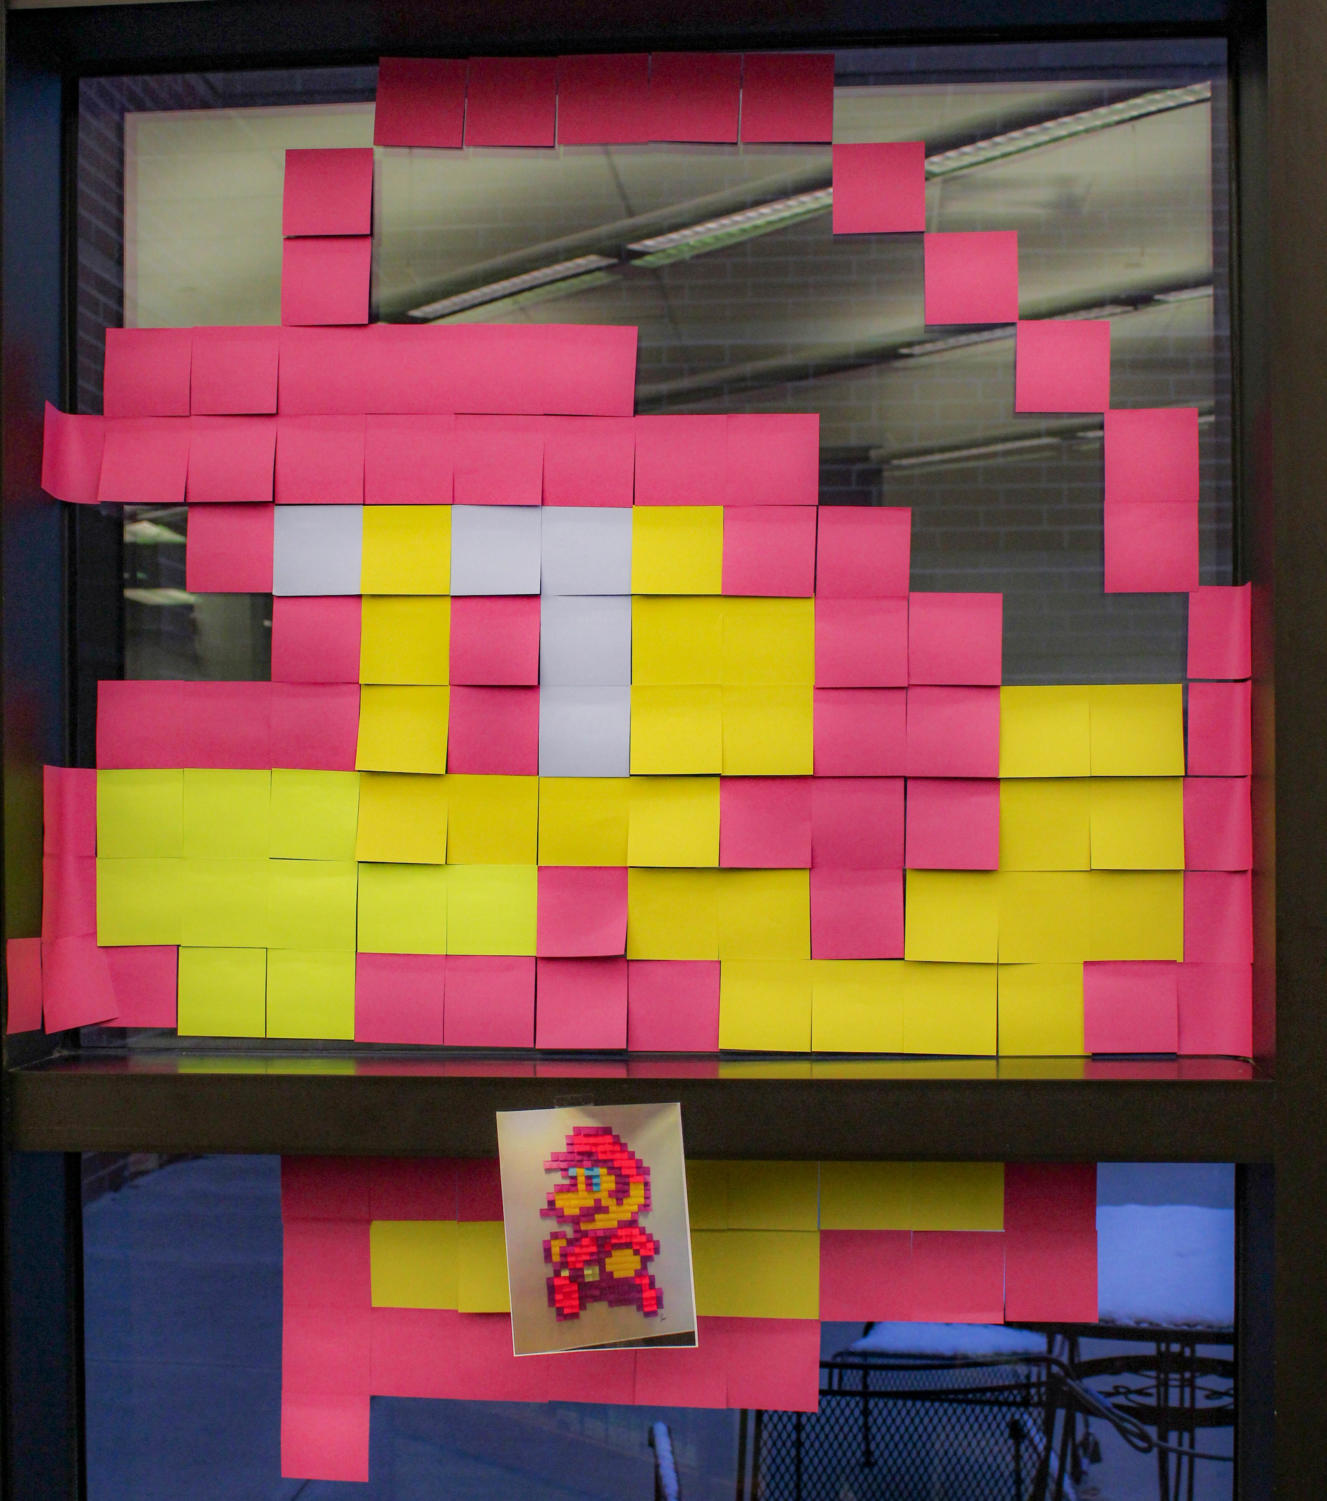 A pixel picture of Mario put together with post-it notes by Jordin Garey.